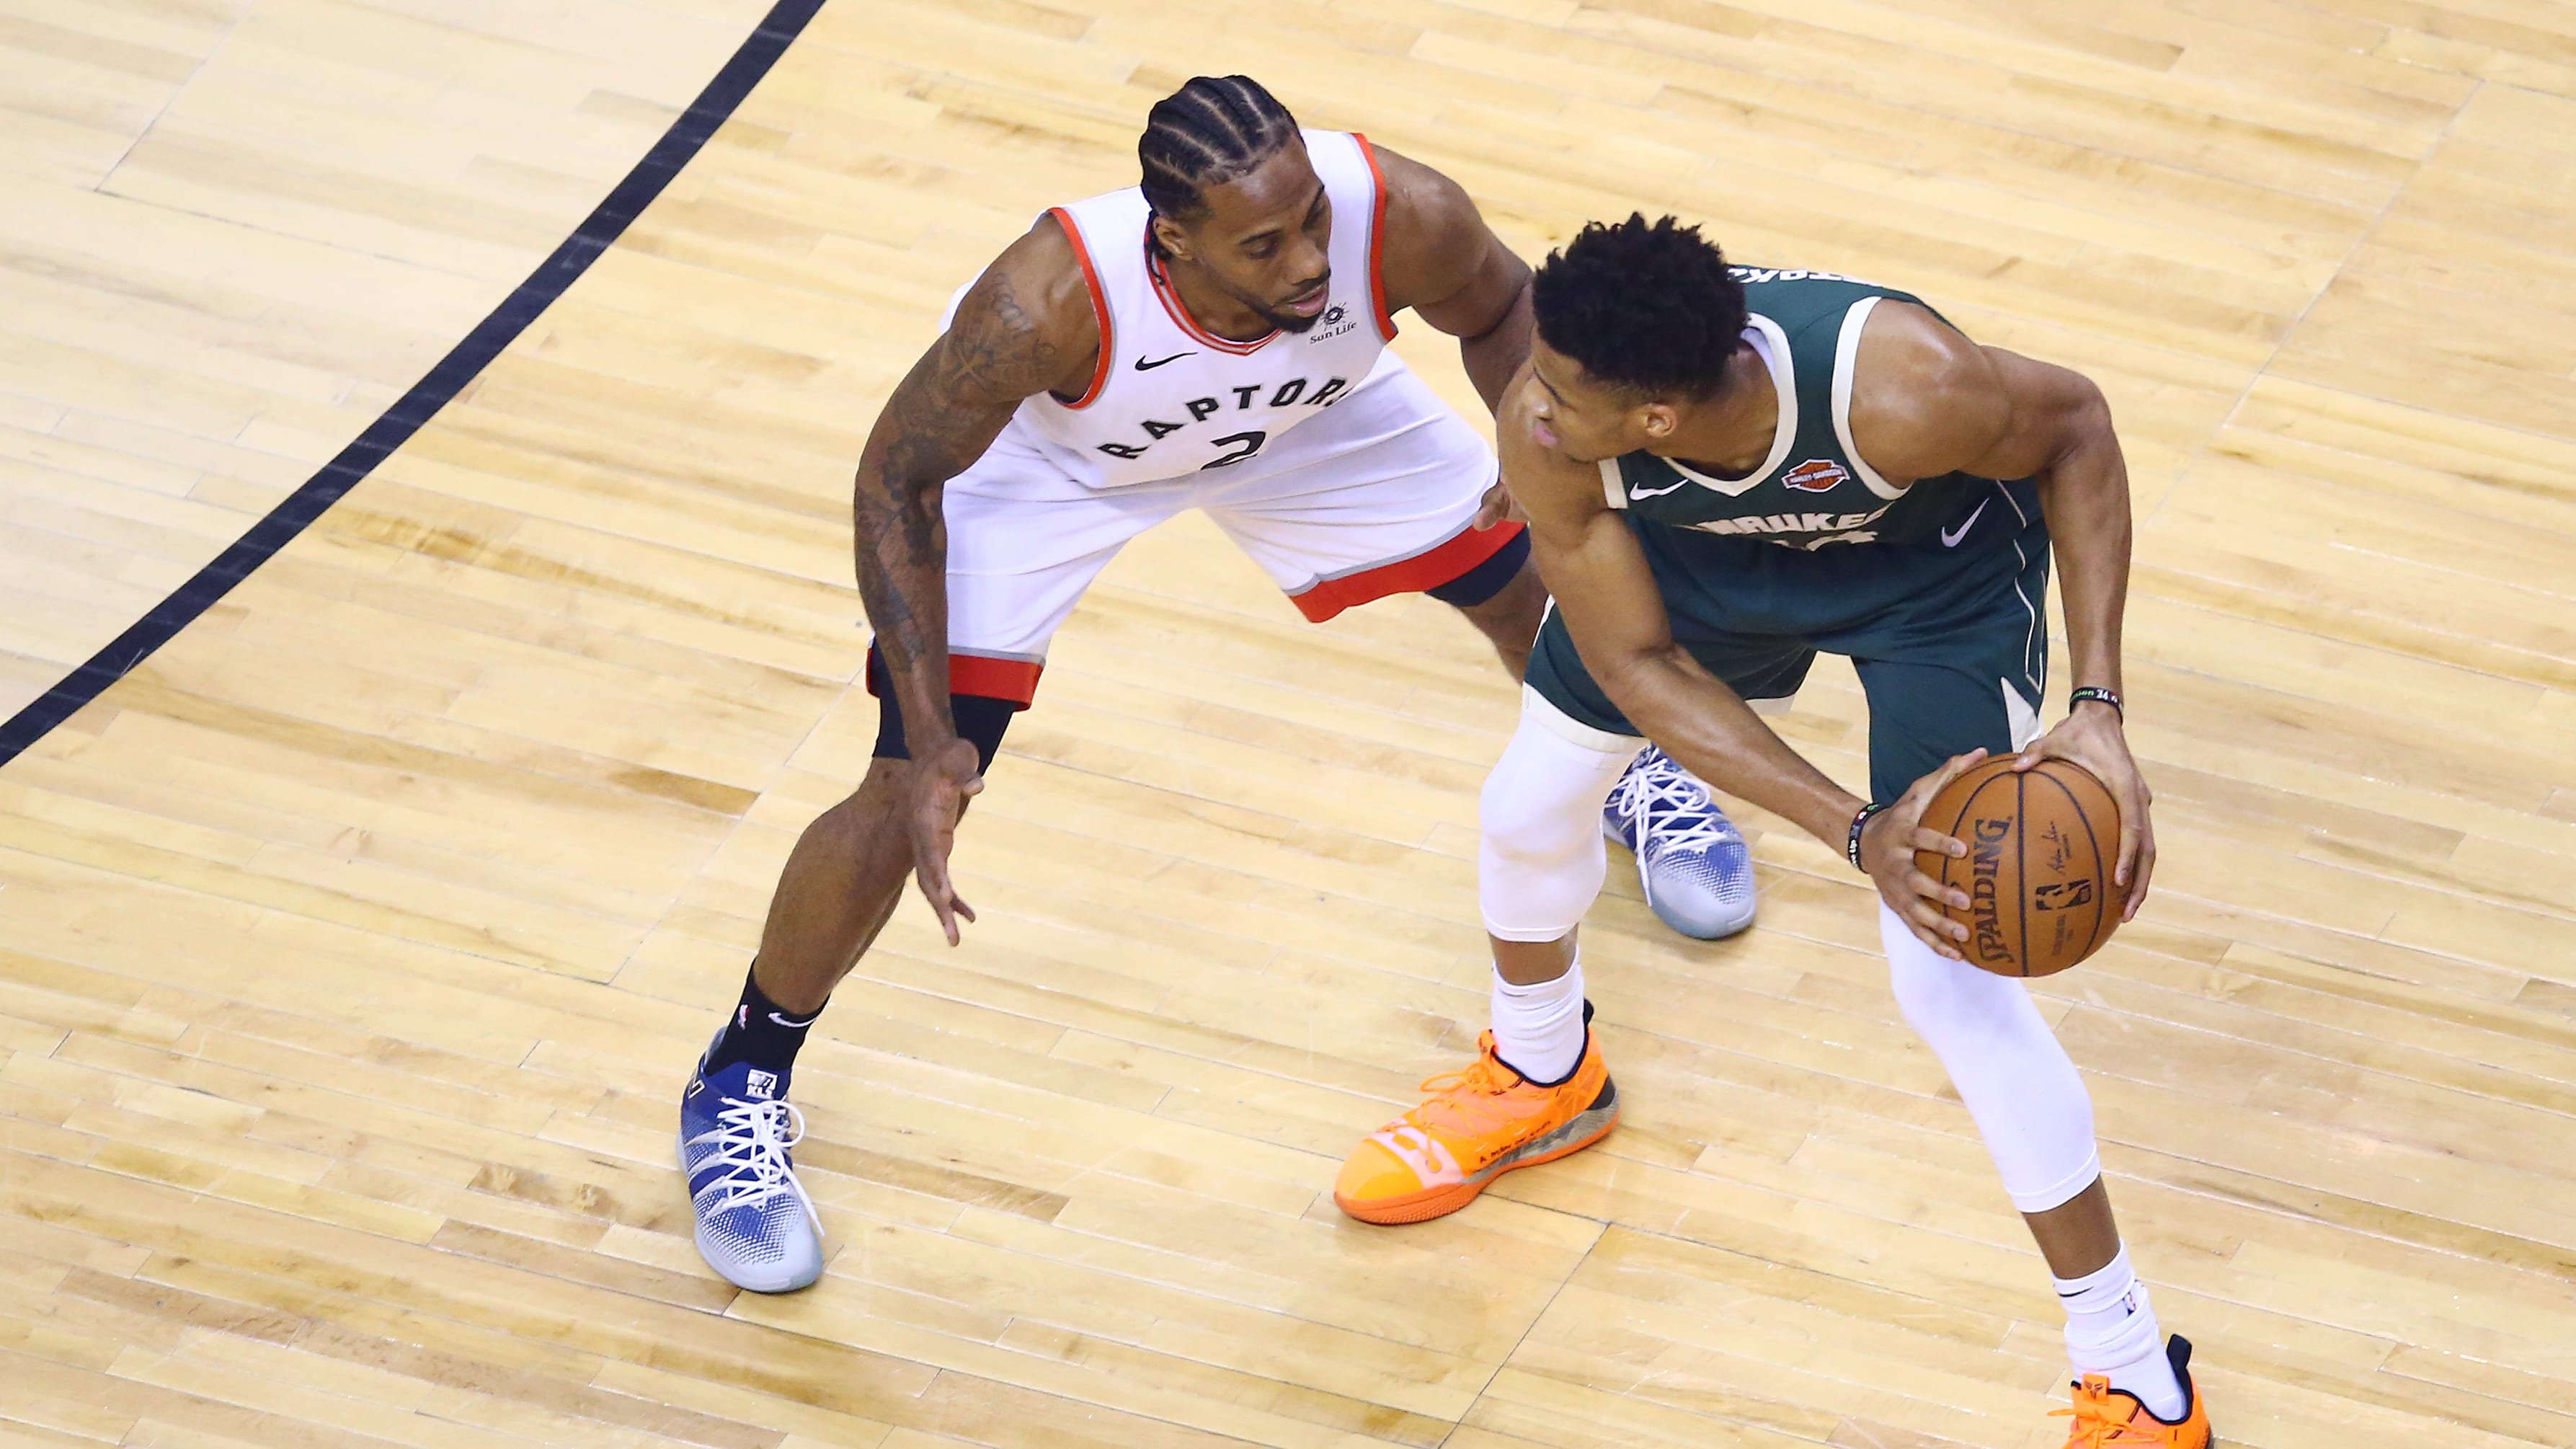 TORONTO, ONTARIO - MAY 19: Kawhi Leonard #2 of the Toronto Raptors defends Giannis Antetokounmpo #34 of the Milwaukee Bucks during the first half in game three of the NBA Eastern Conference Finals at Scotiabank Arena on May 19, 2019 in Toronto, Canada. NOTE TO USER: User expressly acknowledges and agrees that, by downloading and or using this photograph, User is consenting to the terms and conditions of the Getty Images License Agreement. (Photo by Vaughn Ridley/Getty Images)